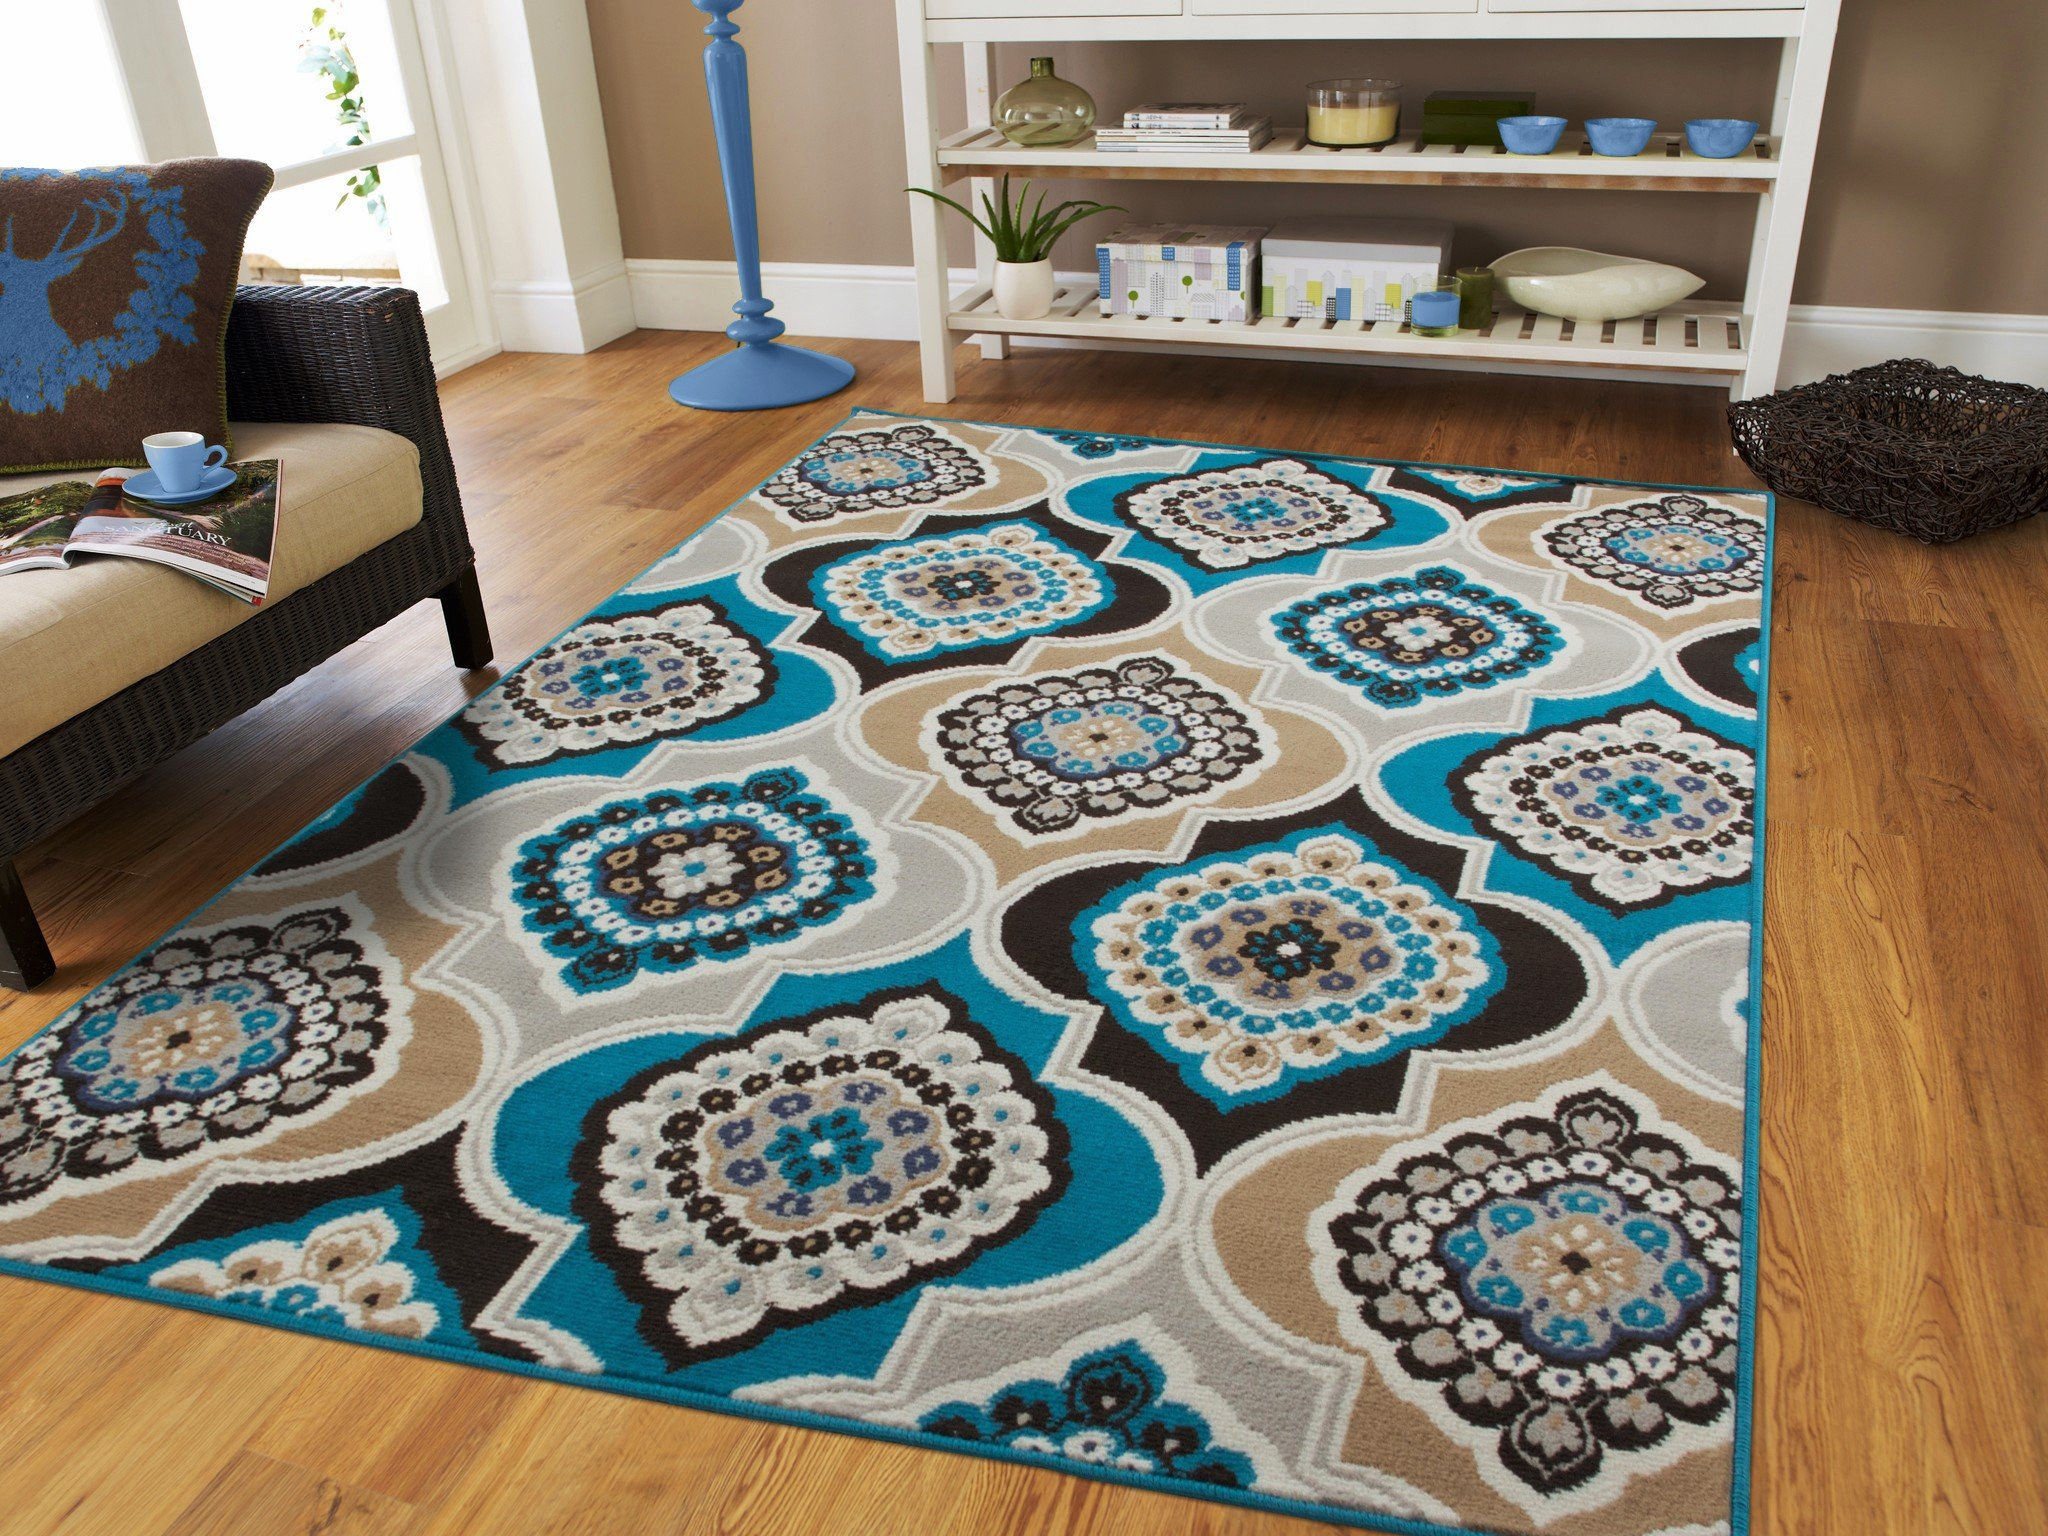 Century Home Goods Collection Panal and Diamonds Area Rug Blues 8x10 Contemporary Rugs Blue 8x11 Area Rug 8x10 Clearance Under 100 by AS Quality Rugs